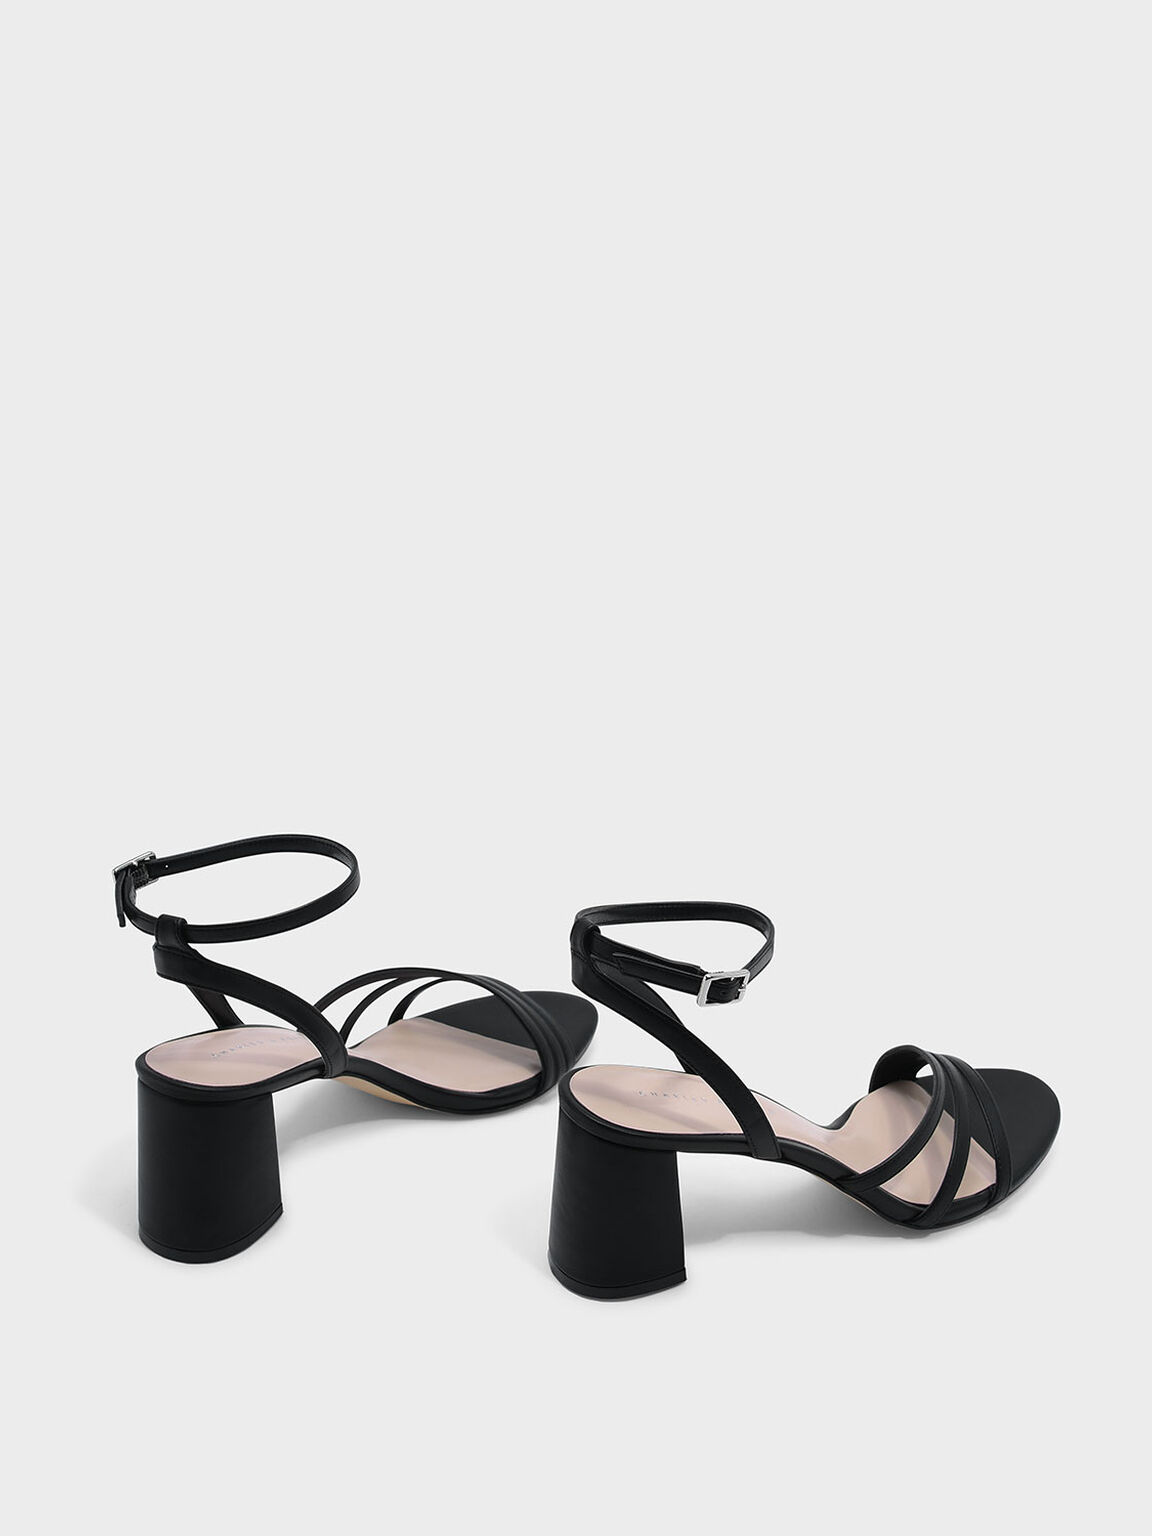 Ankle Strap Sandals, Black, hi-res